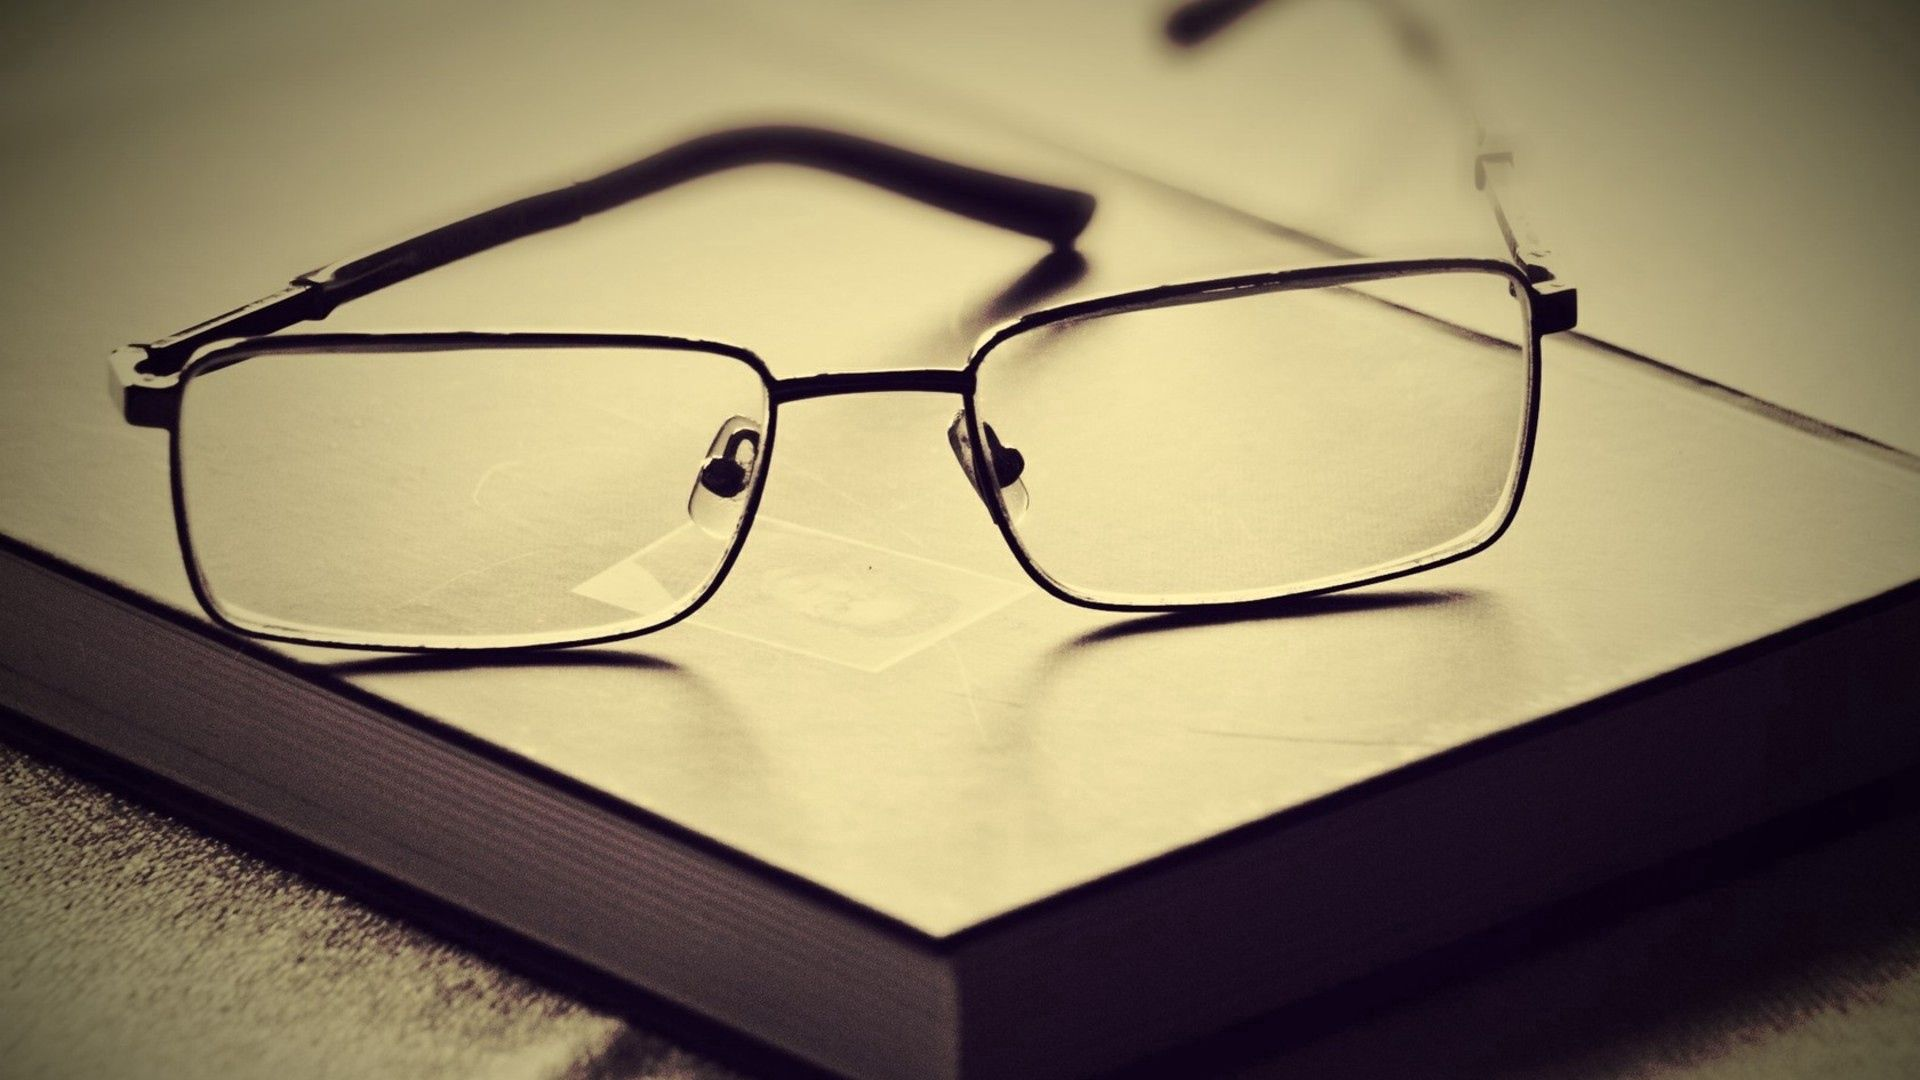 93179 download wallpaper Miscellanea, Miscellaneous, Book, Glasses, Spectacles, Lenses, Frame, Setting screensavers and pictures for free